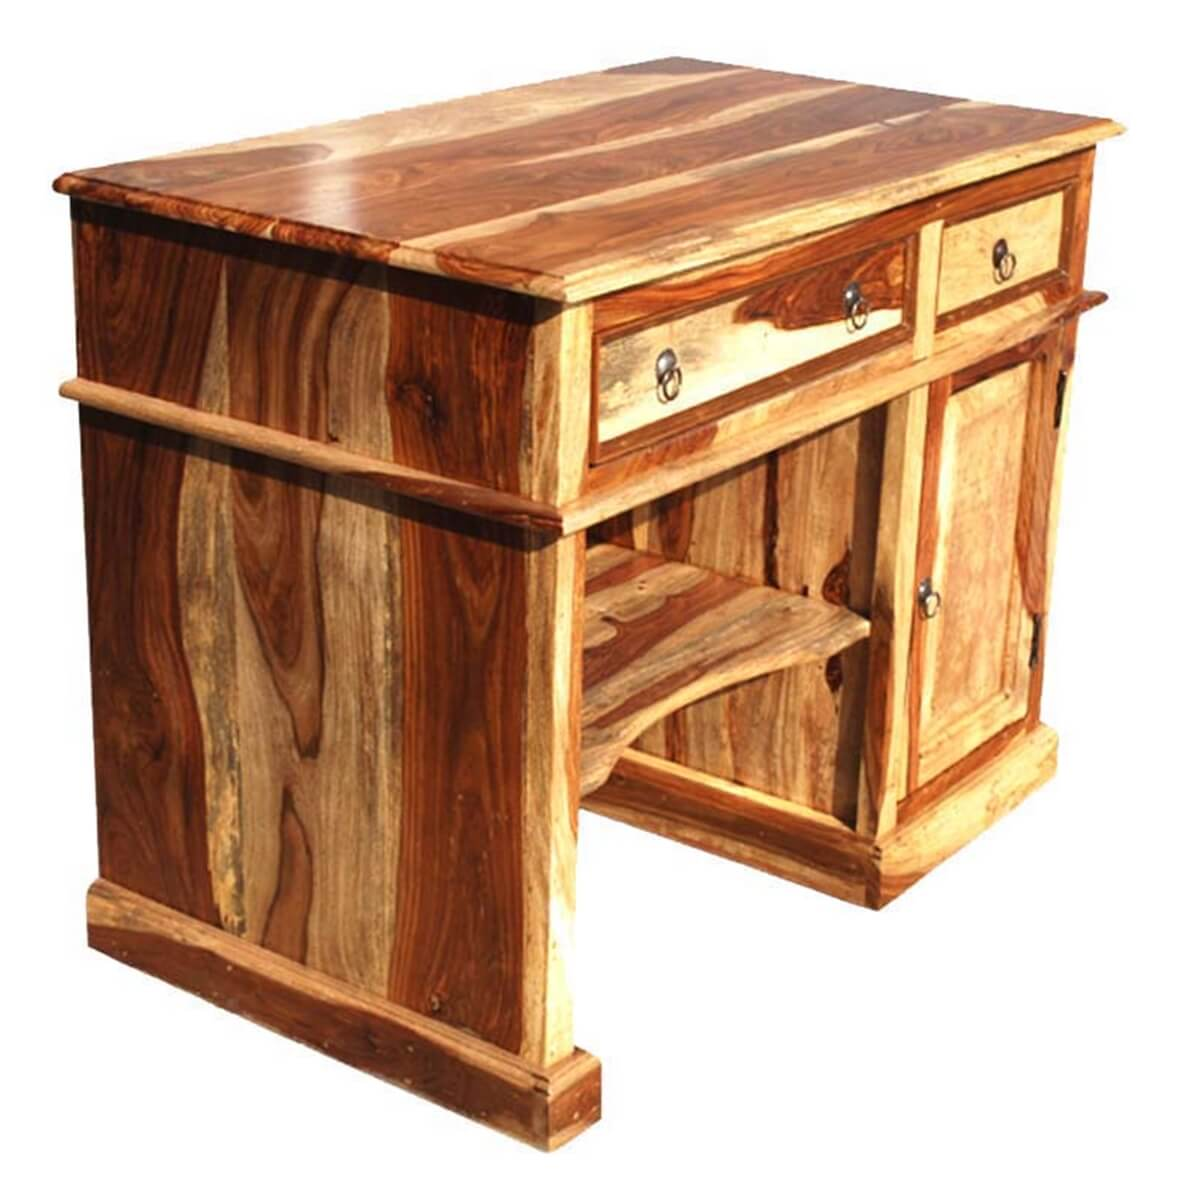 solid wood computer desk for small space. Black Bedroom Furniture Sets. Home Design Ideas